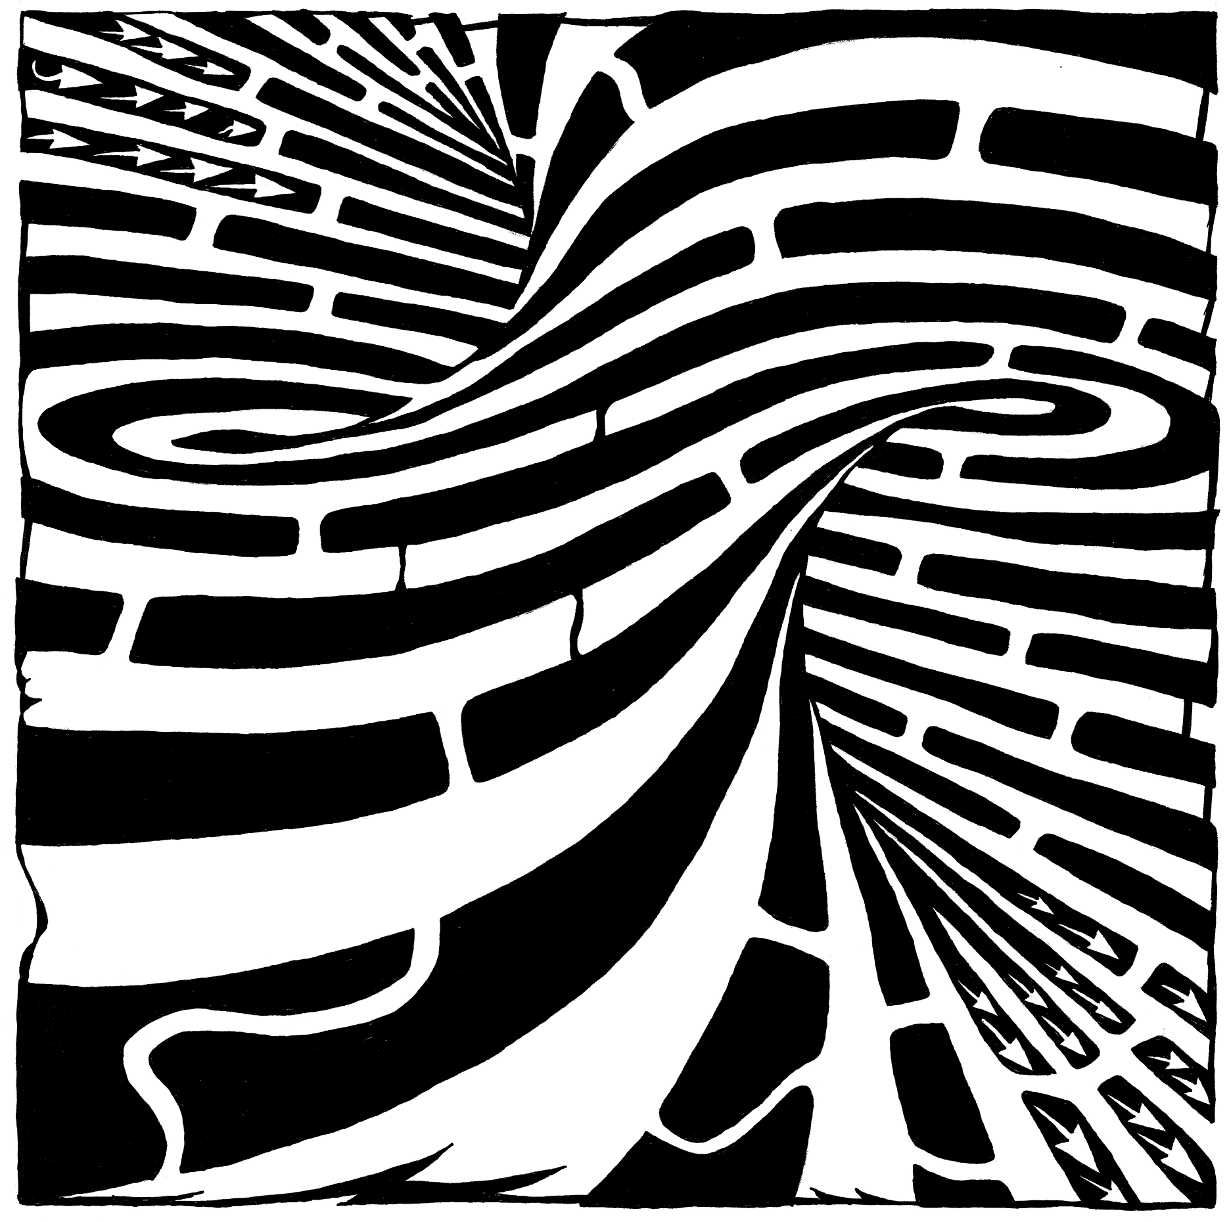 the twisted and warped maze by Yonatan Frimer